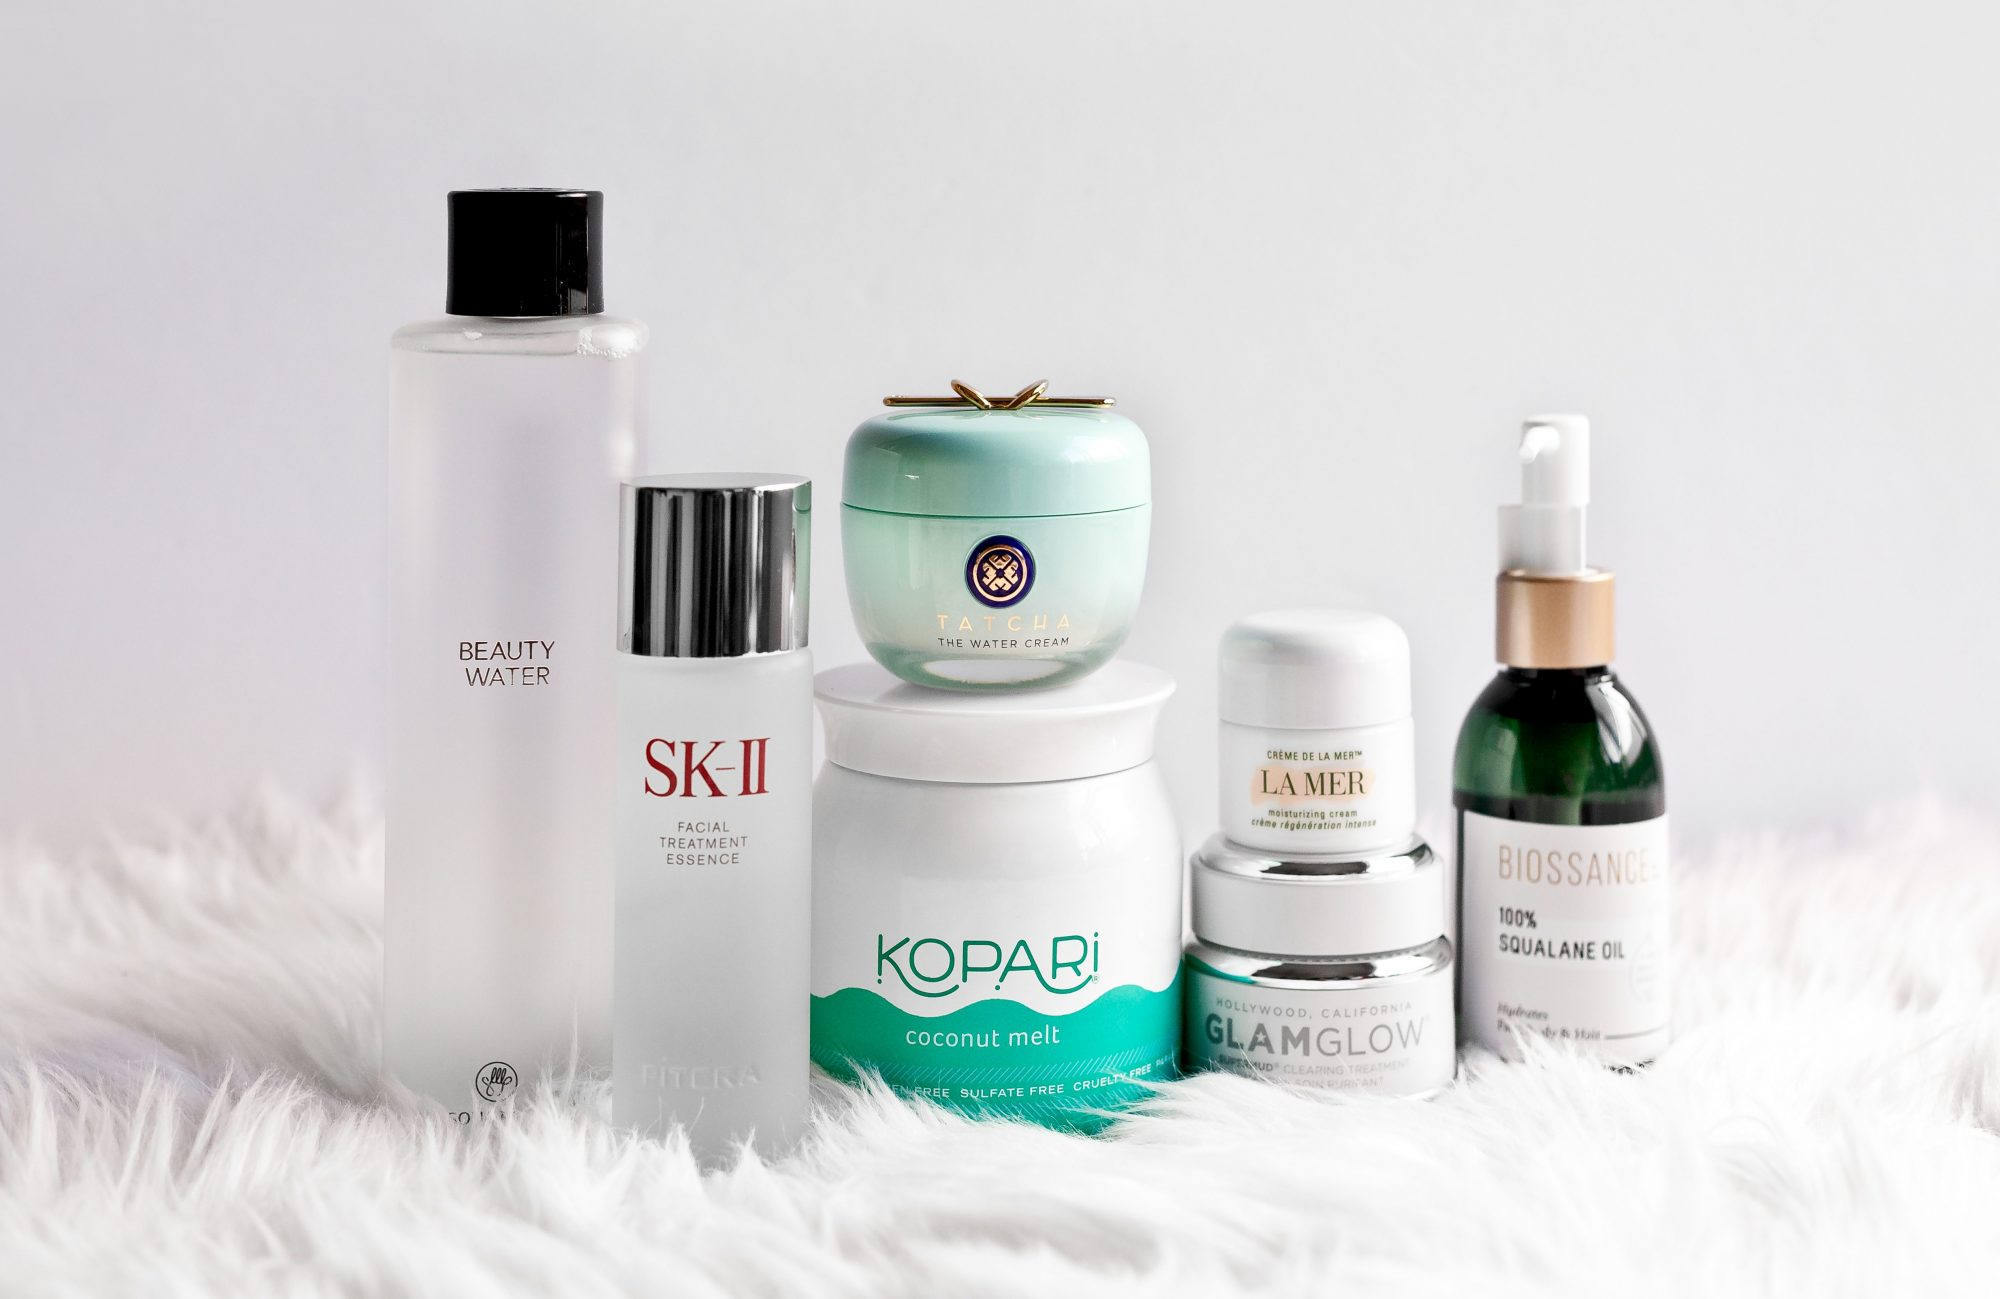 Expensive skincare and beauty products from Sephora compared to affordable drugstore products